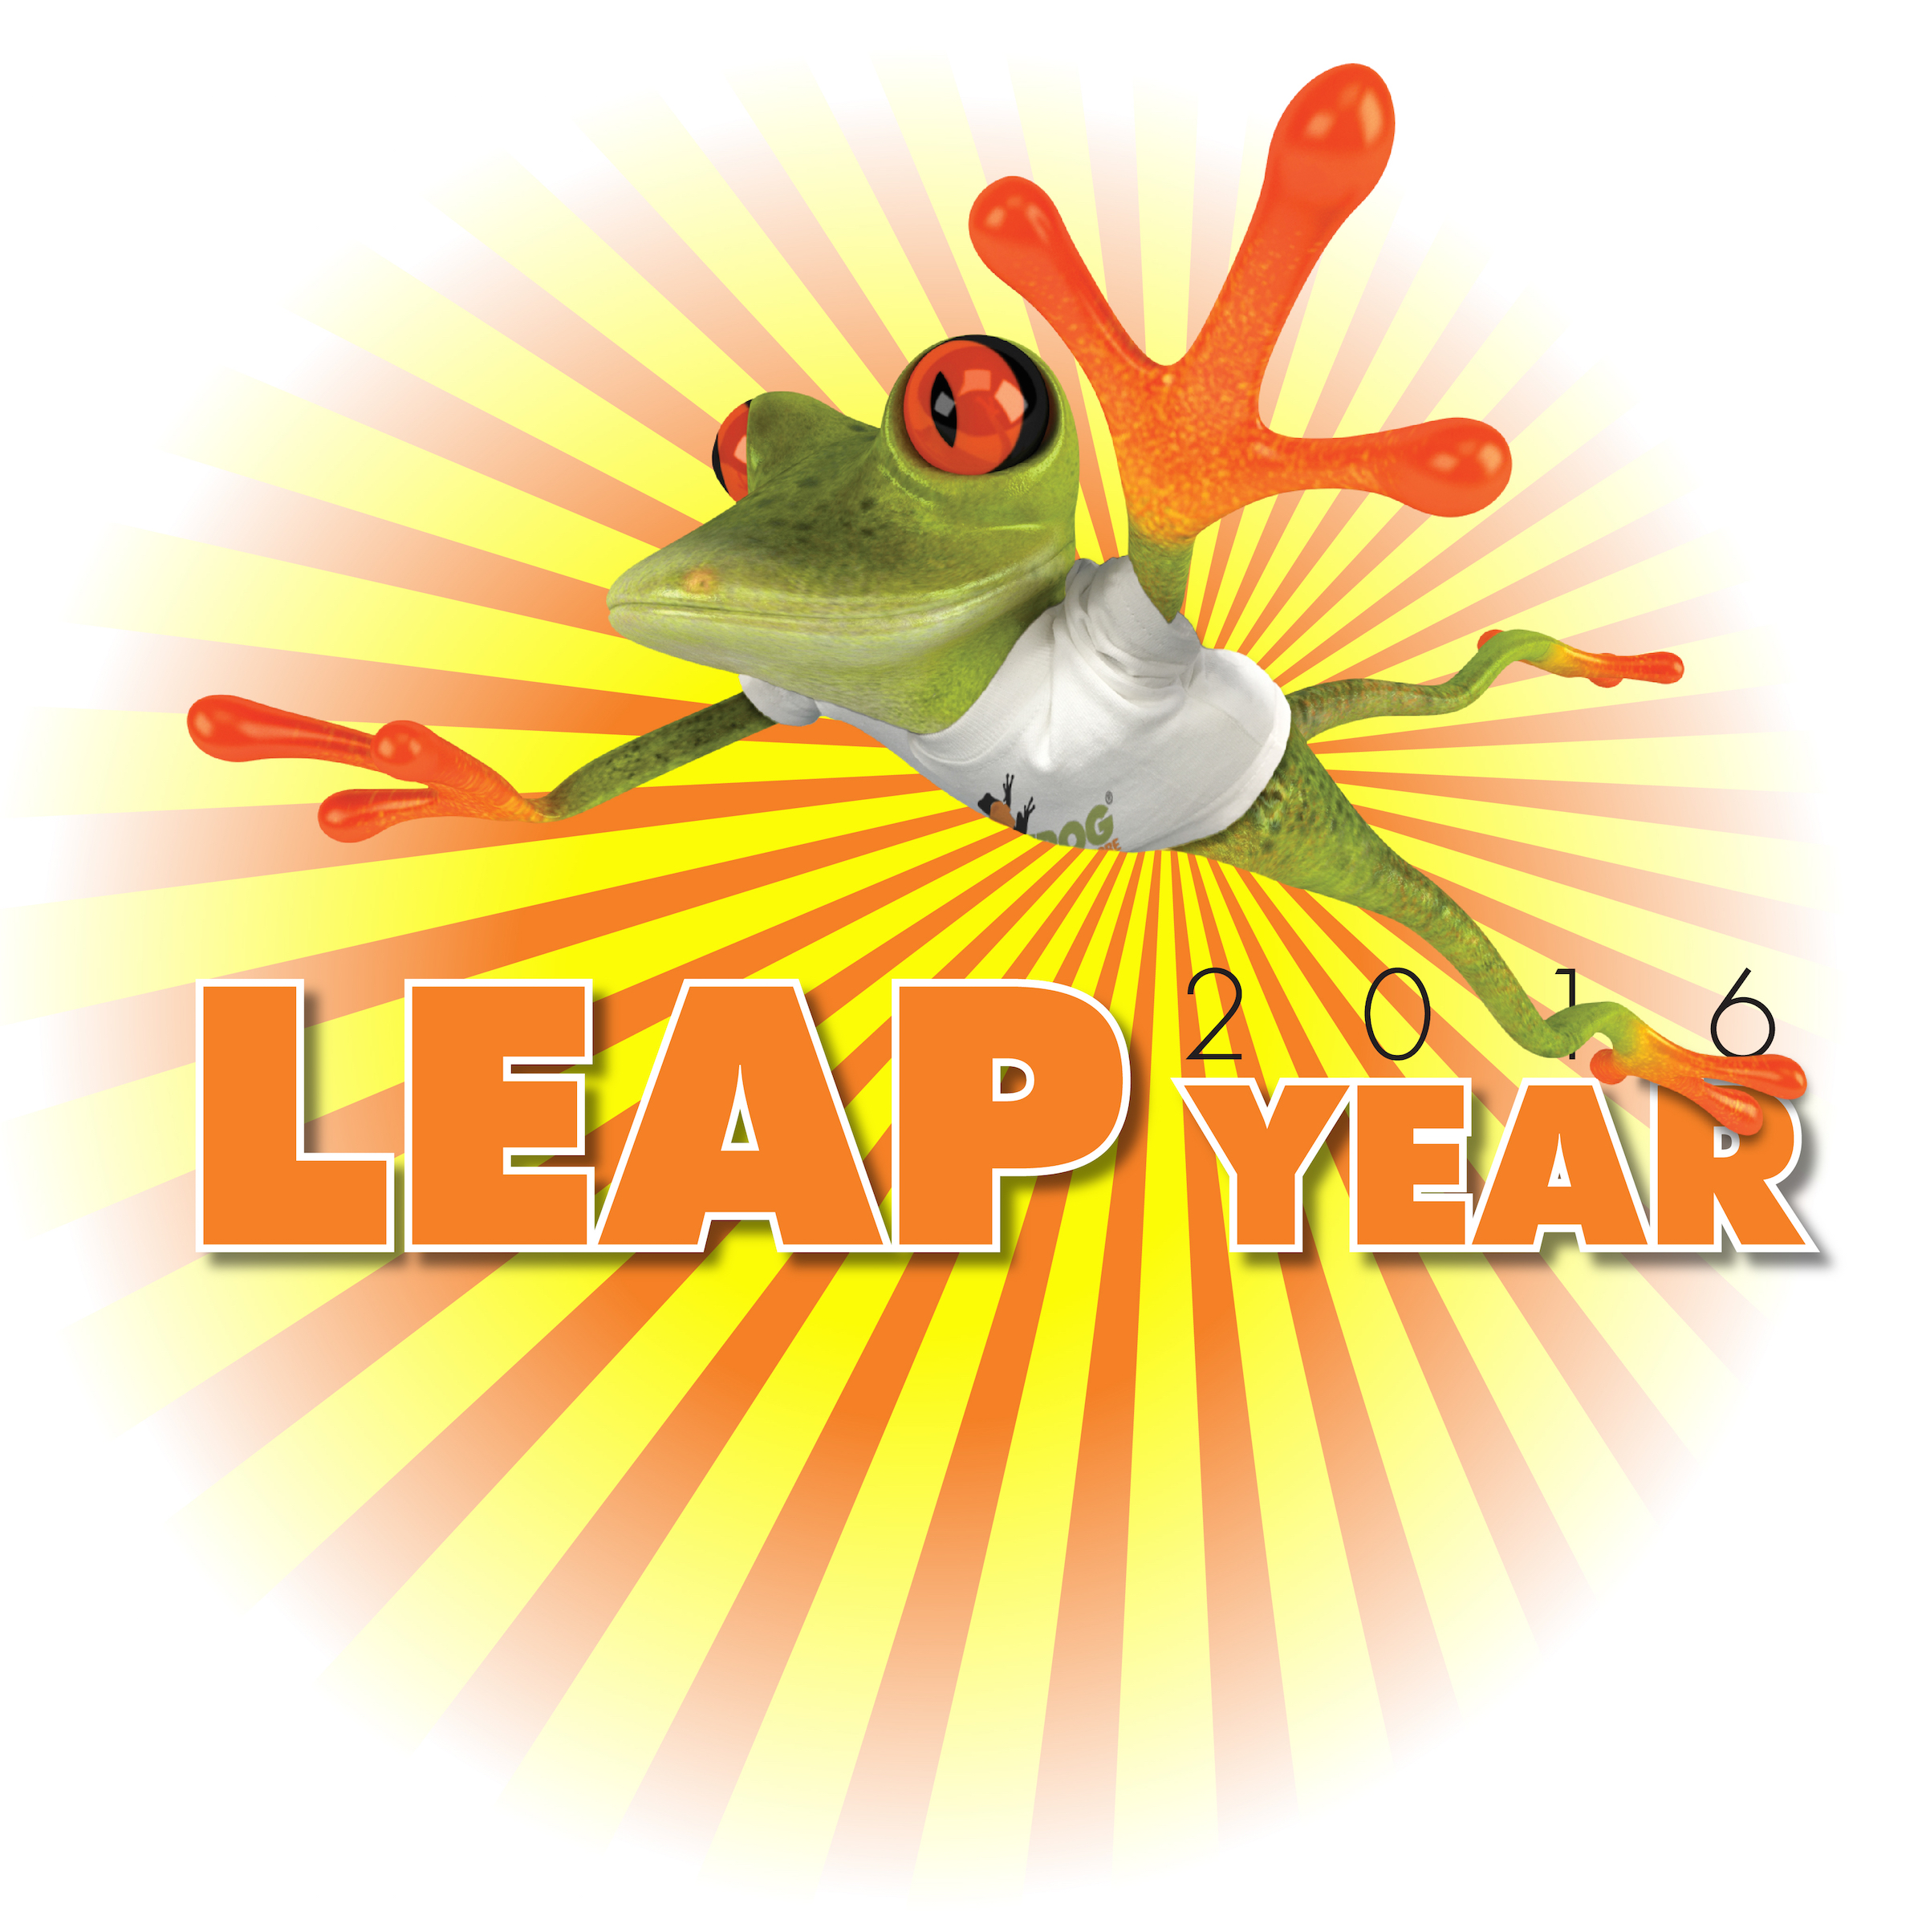 2016 clipart leap year. More day freebies